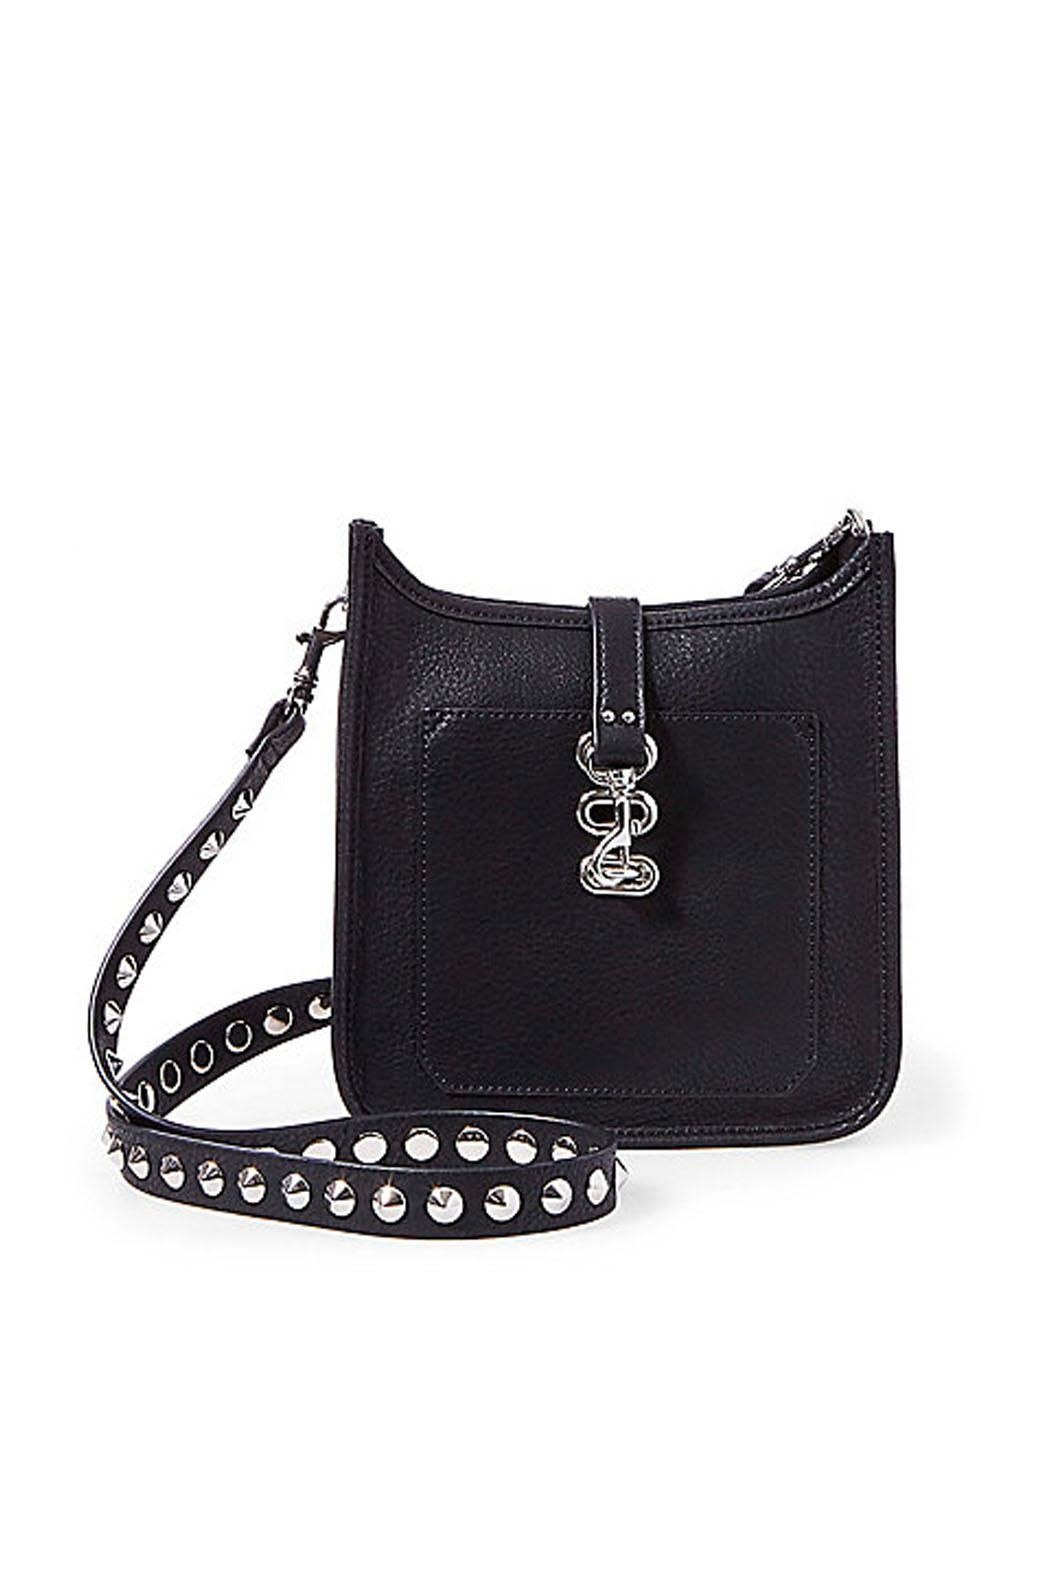 Steve Madden Bwylie Cross Body - Front Cropped Image